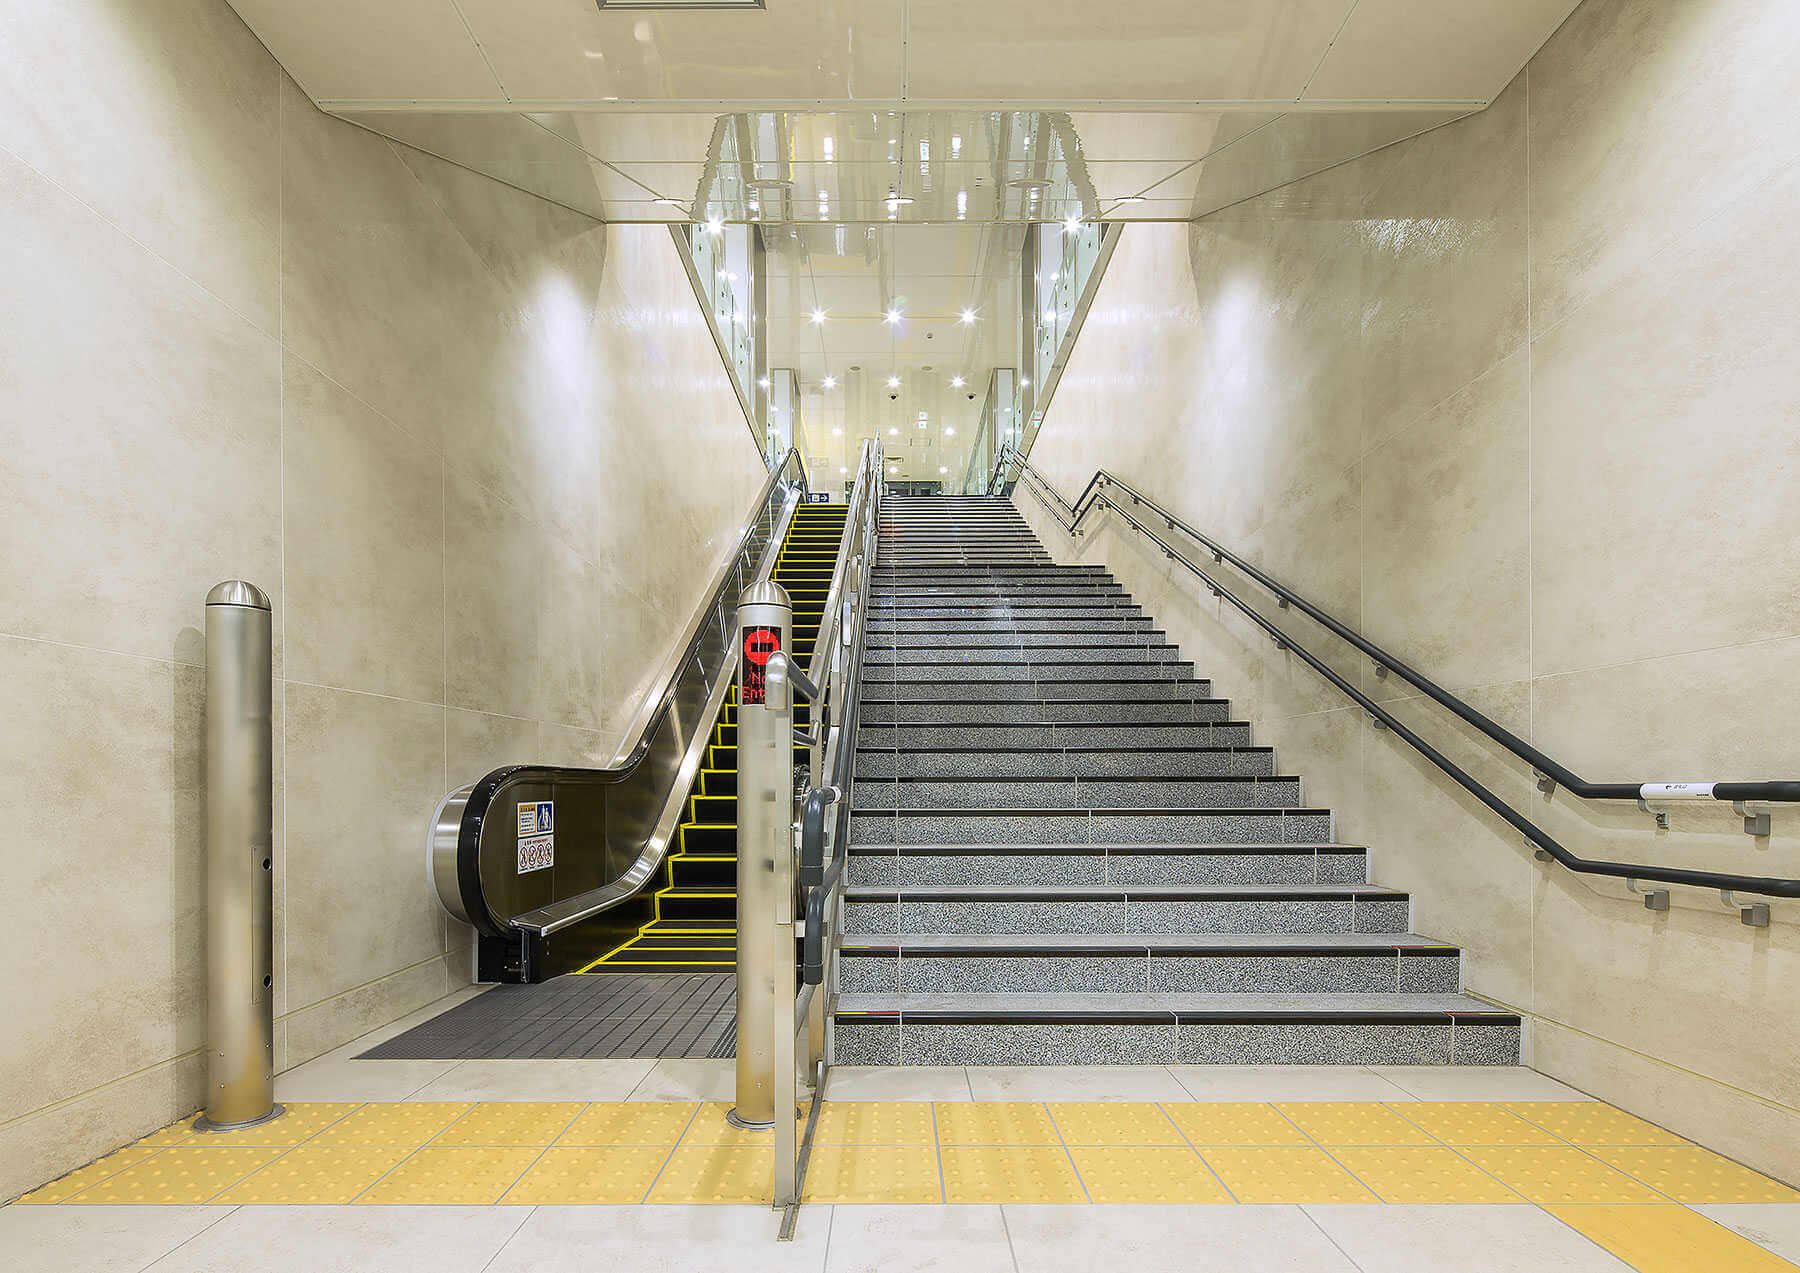 Coverlam porcelain wall tiles in Tokyo metro